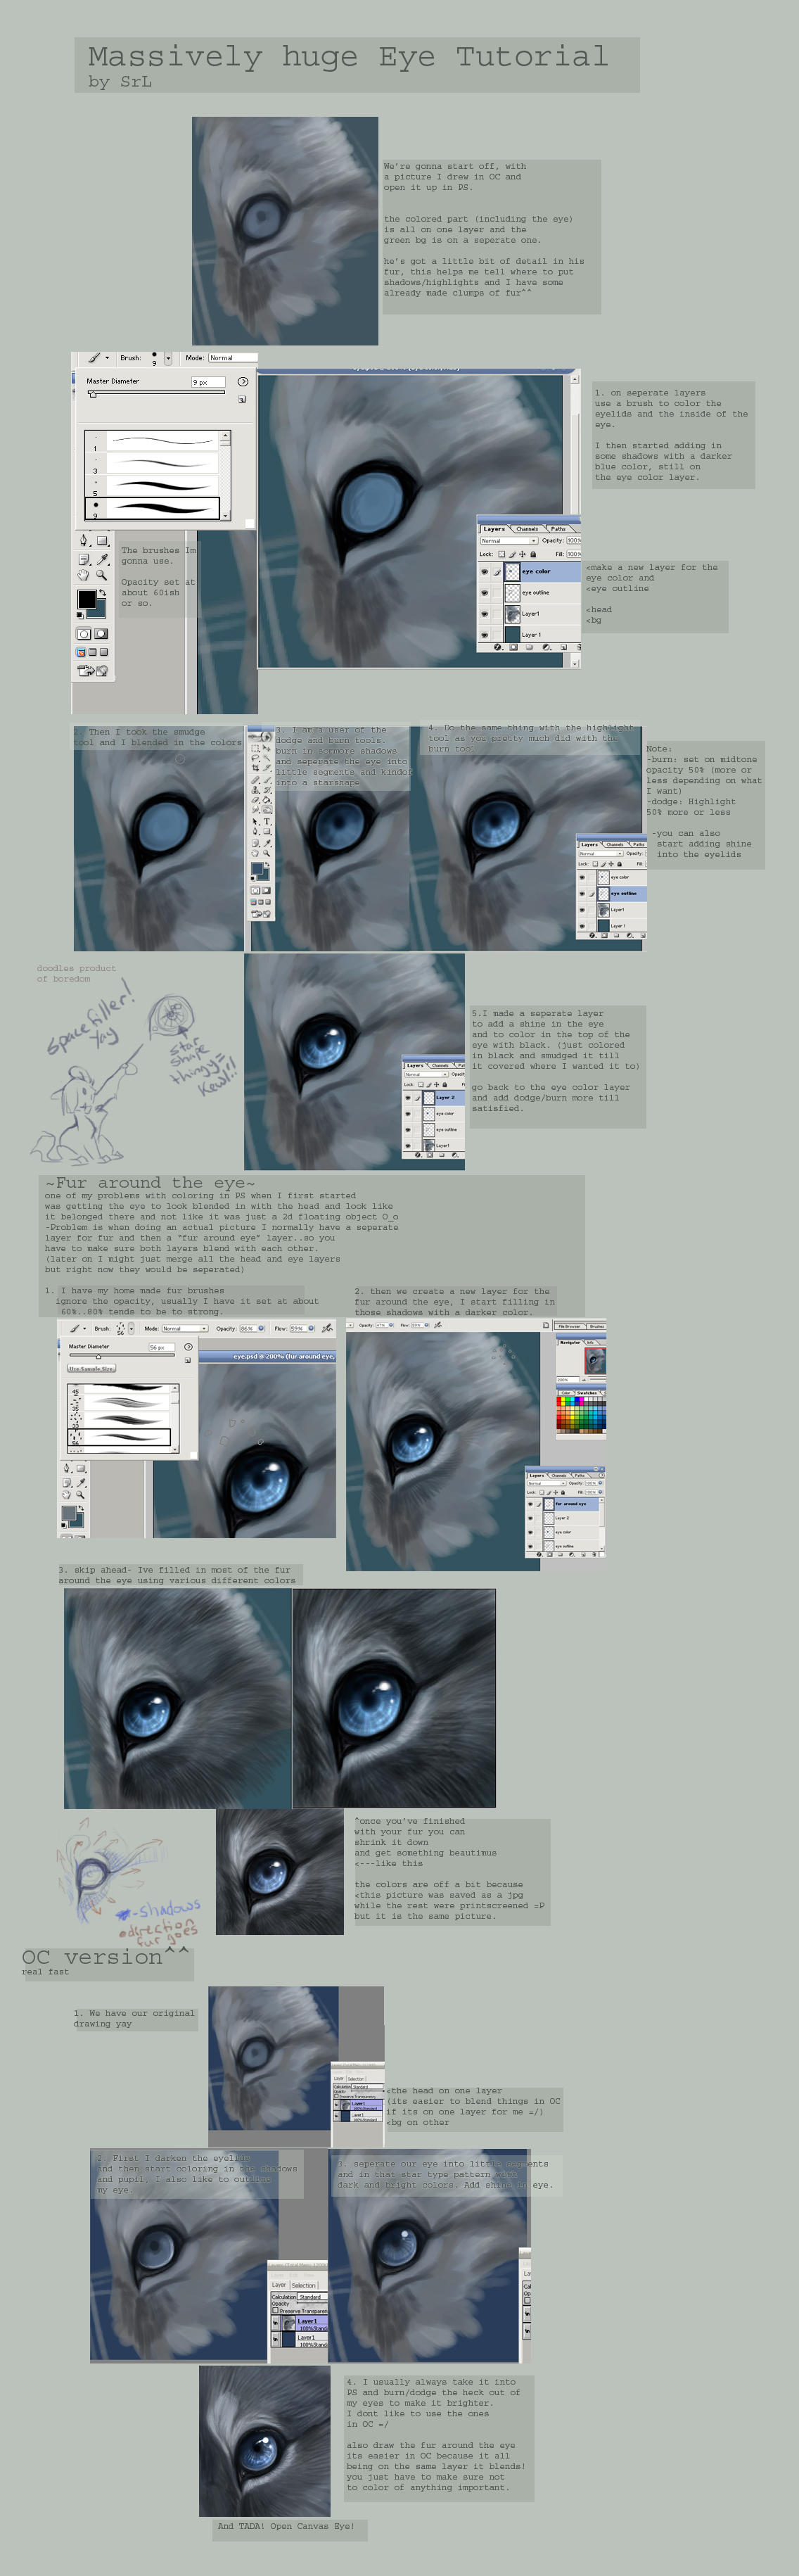 http://fc07.deviantart.net/fs7/i/2005/240/7/7/Animal_Eye_Tutorial_by_daisy7.jpg